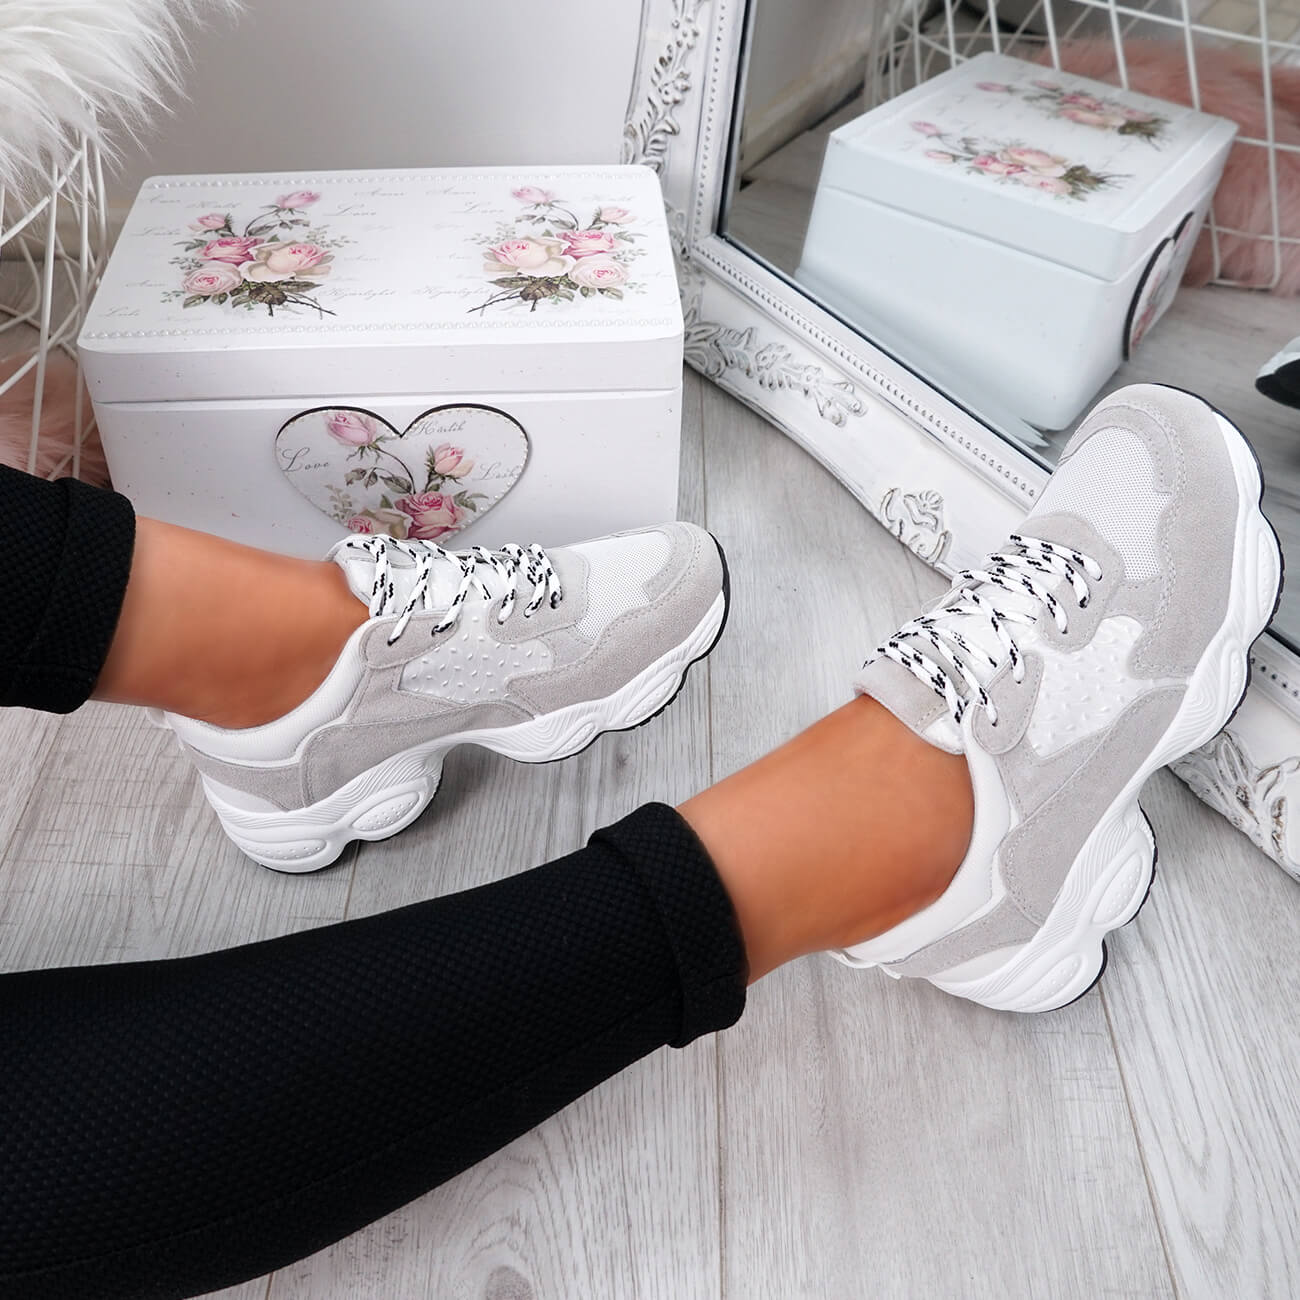 WOMENS-LADIES-RUNNING-GYM-CHUNKY-TRAINERS-SNEAKERS-SHOES-SIZE miniatura 8